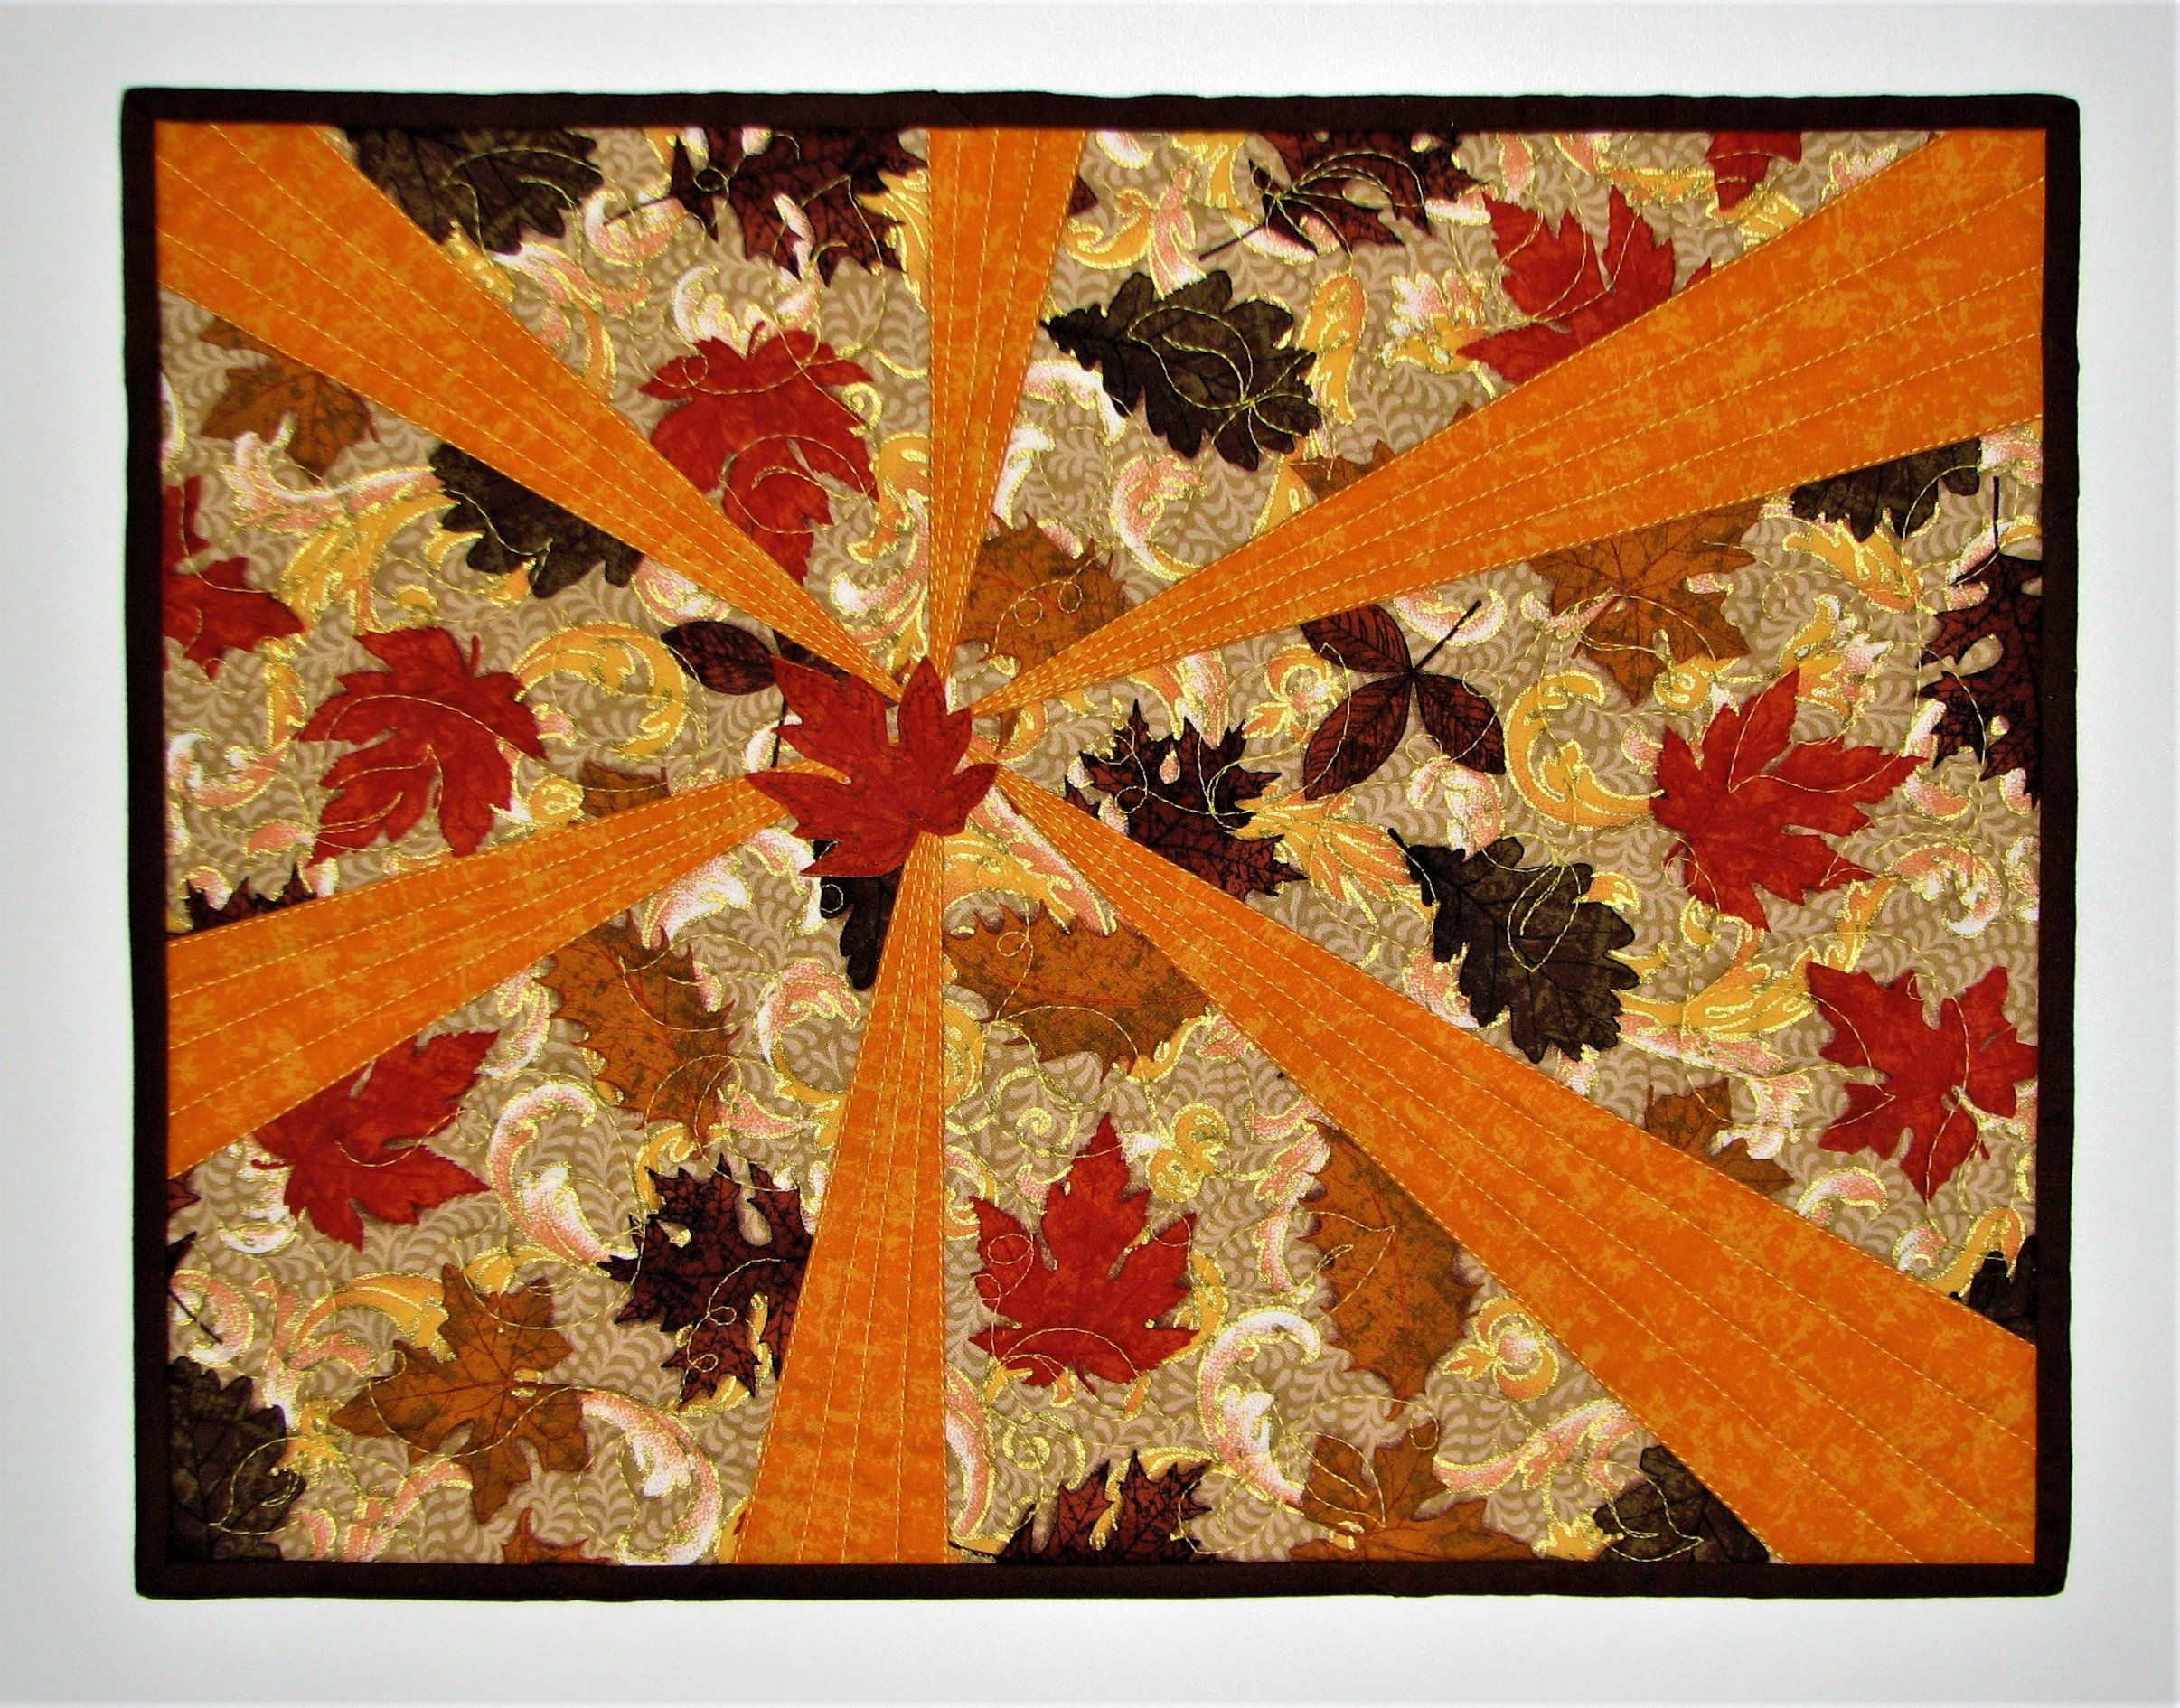 Autumn Quilted Wall Hanging Sunburst And Falling Leaves Art Quilt Handmade Mini Quilt 17 75 X13 75 Fall Quilts Quilted Wall Hangings Art Quilts